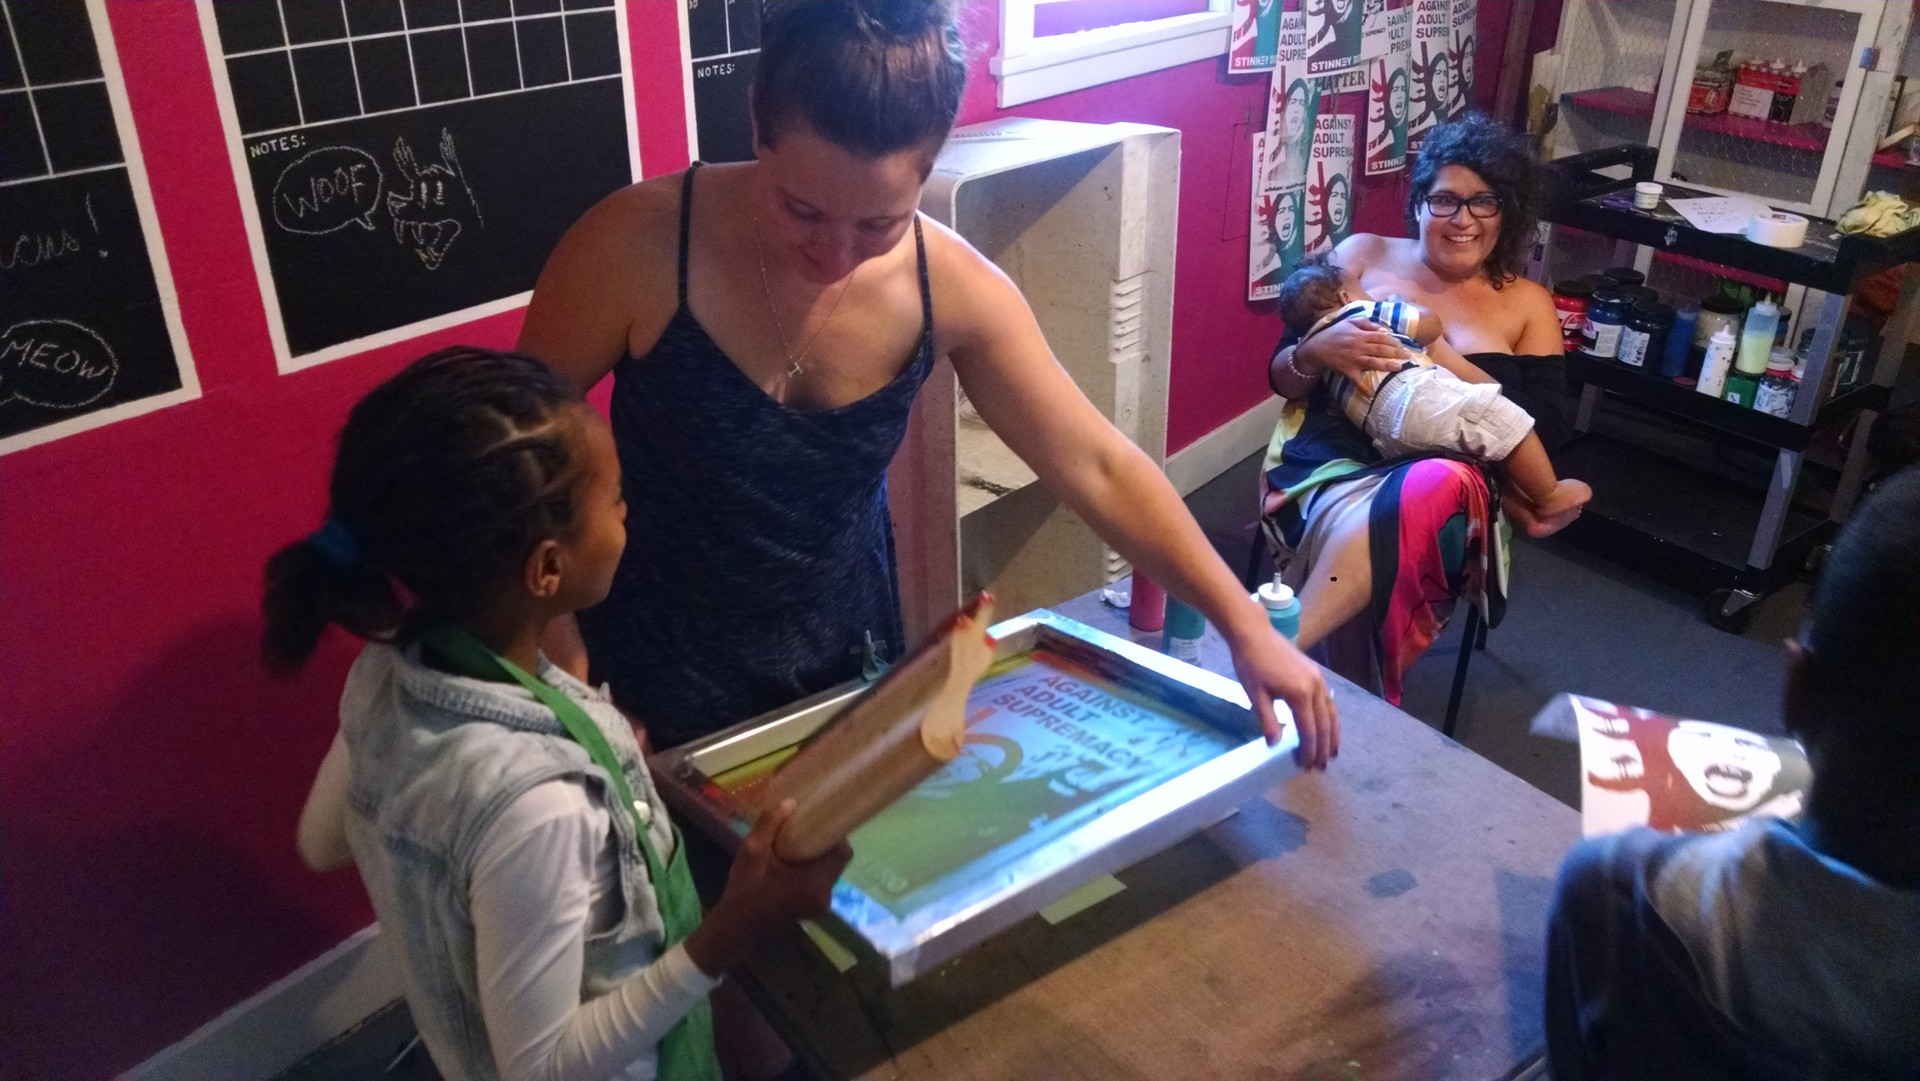 Franki Velez (with baby) helps teach screenprinting at the Omni Commons.